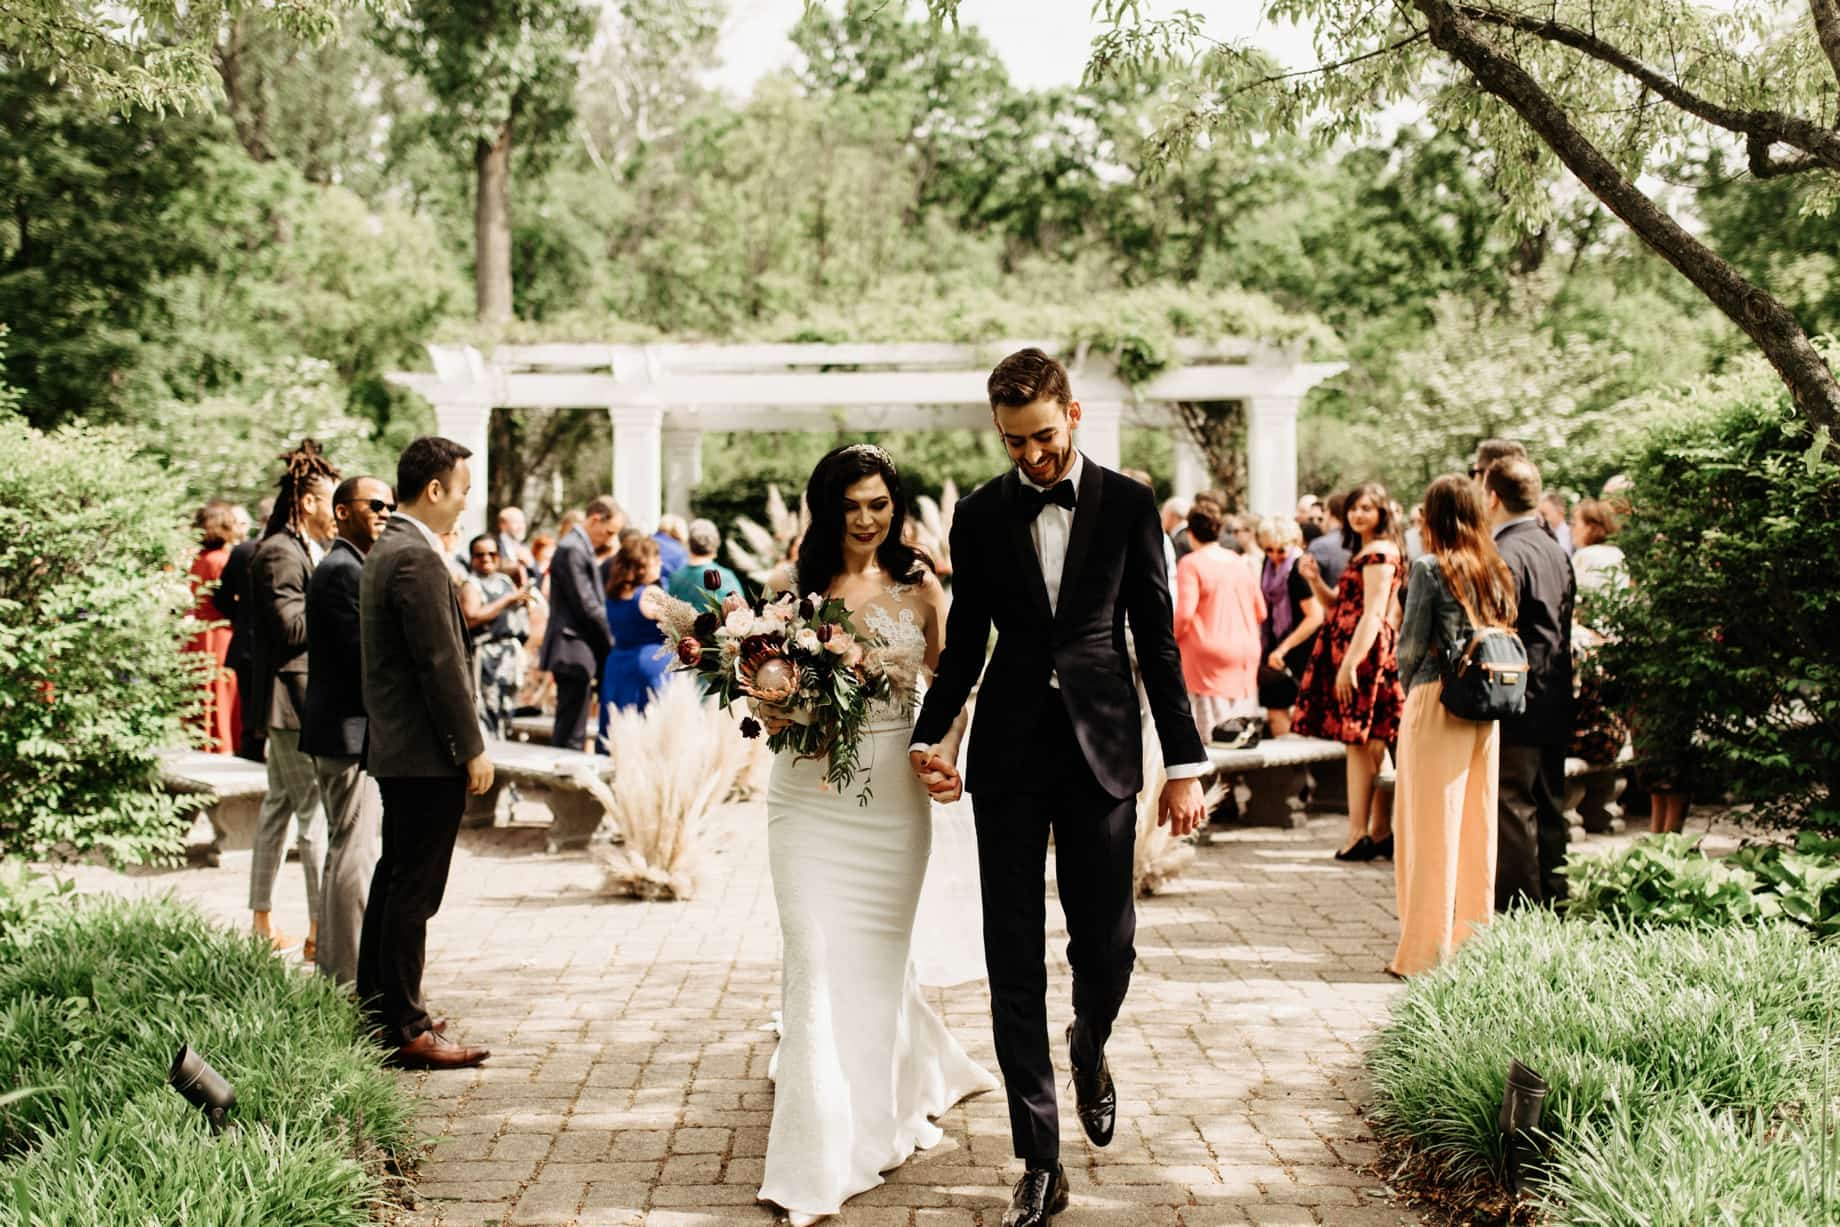 recessional after a wedding ceremony